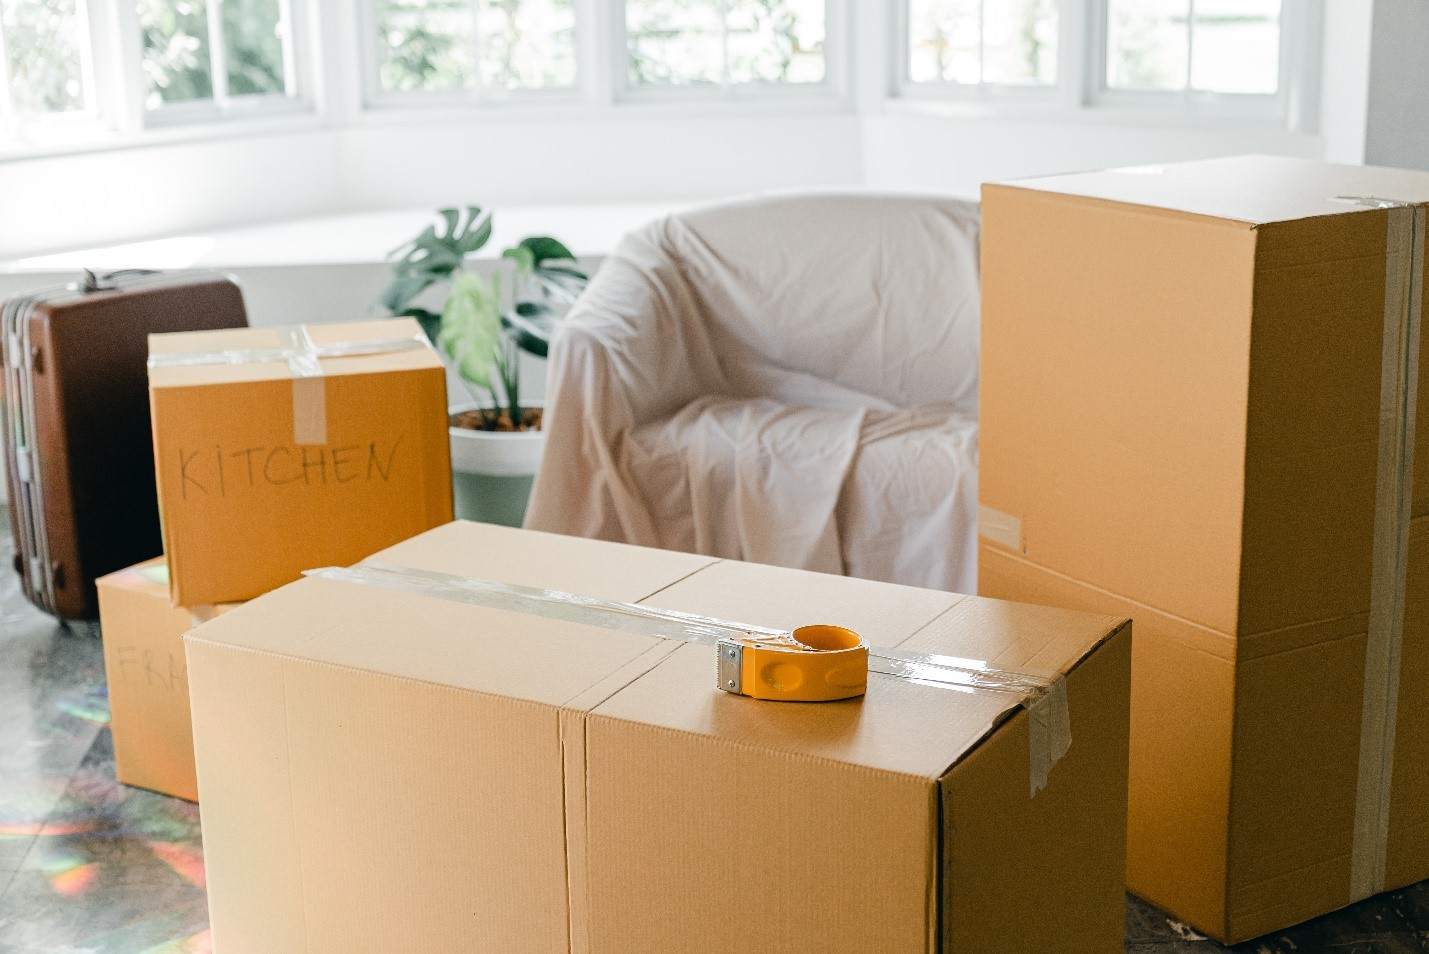 Homeowners use different boxes for local movements in Seattle